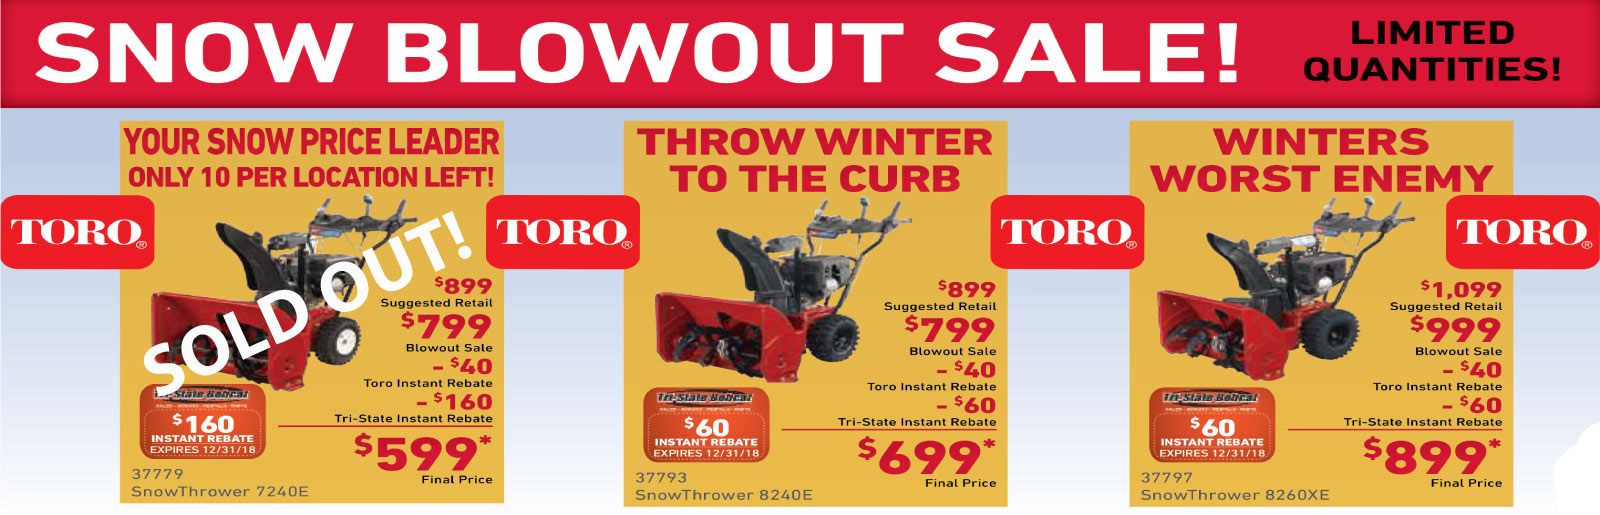 Toro Snow Blowout Sale